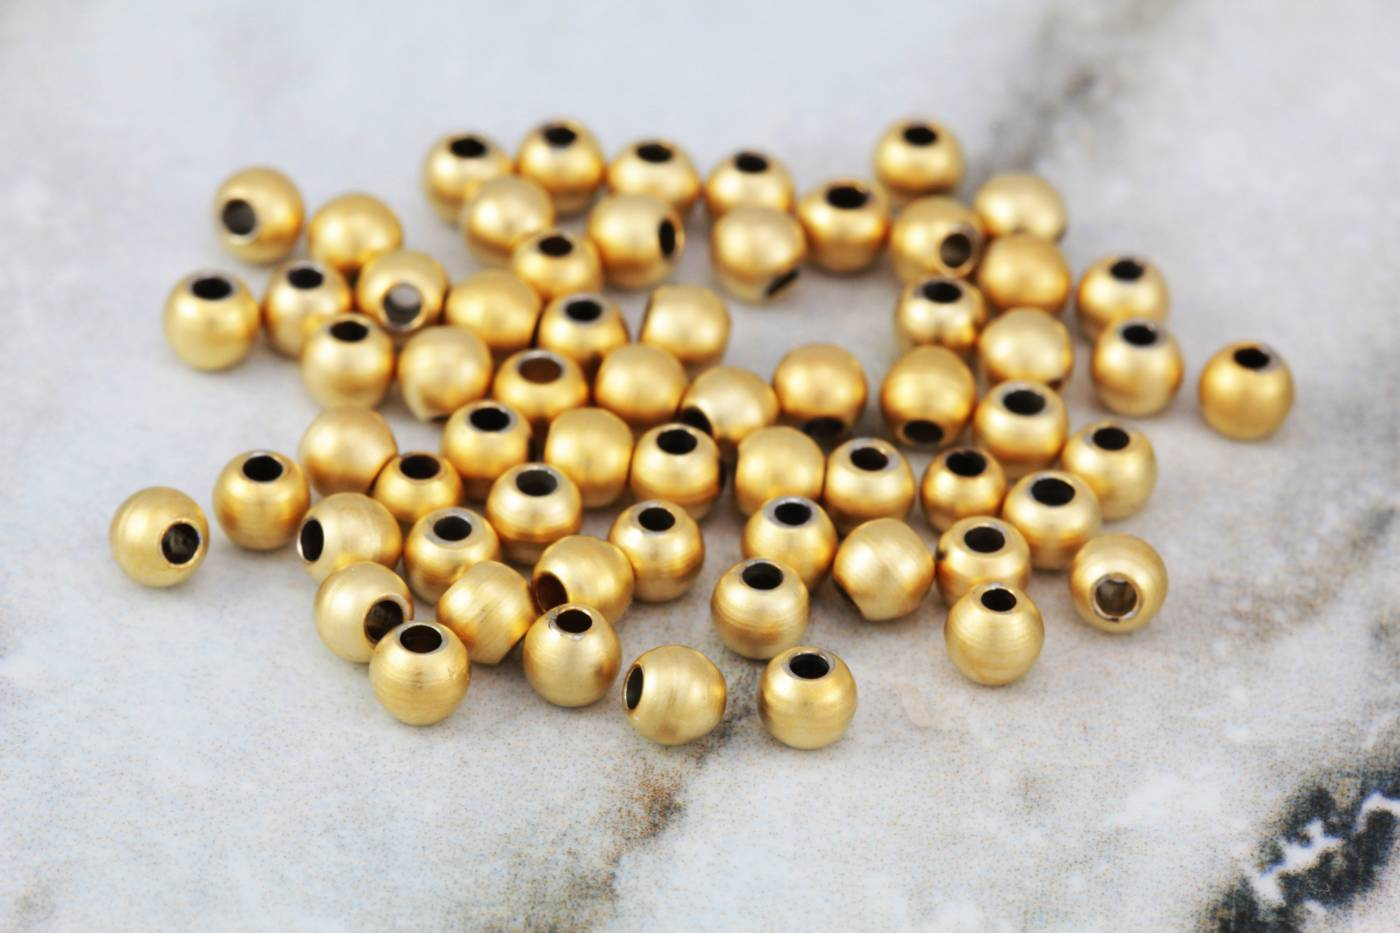 gold-plated-brass-3mm-round-ball-beads.jpg